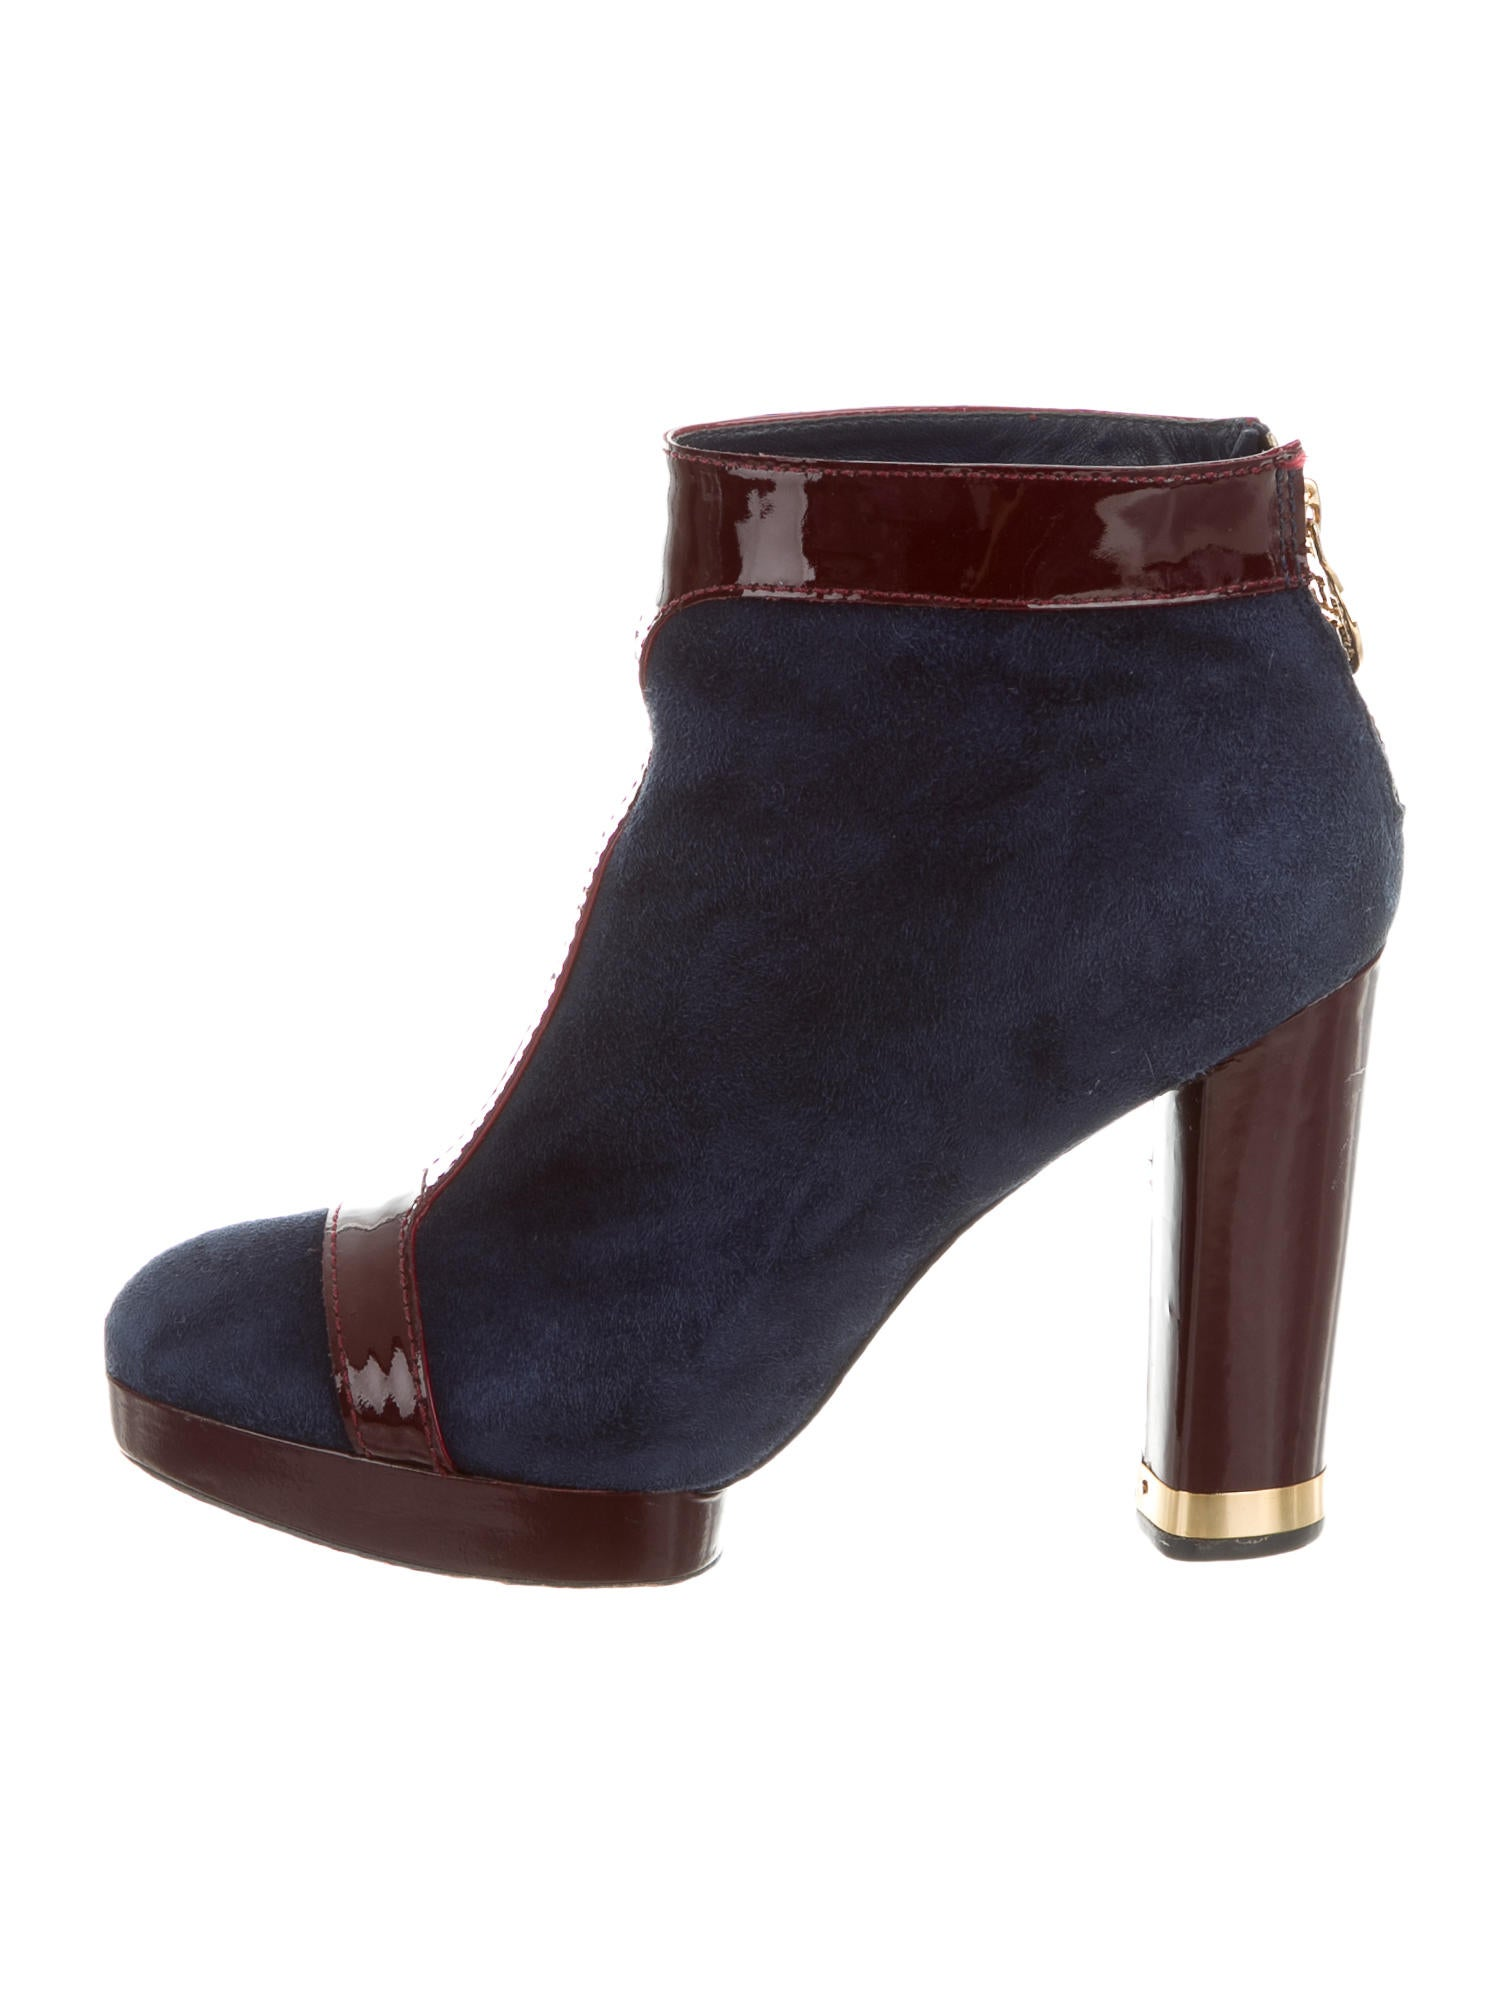 burch suede colorblock ankle boots shoes wto76391